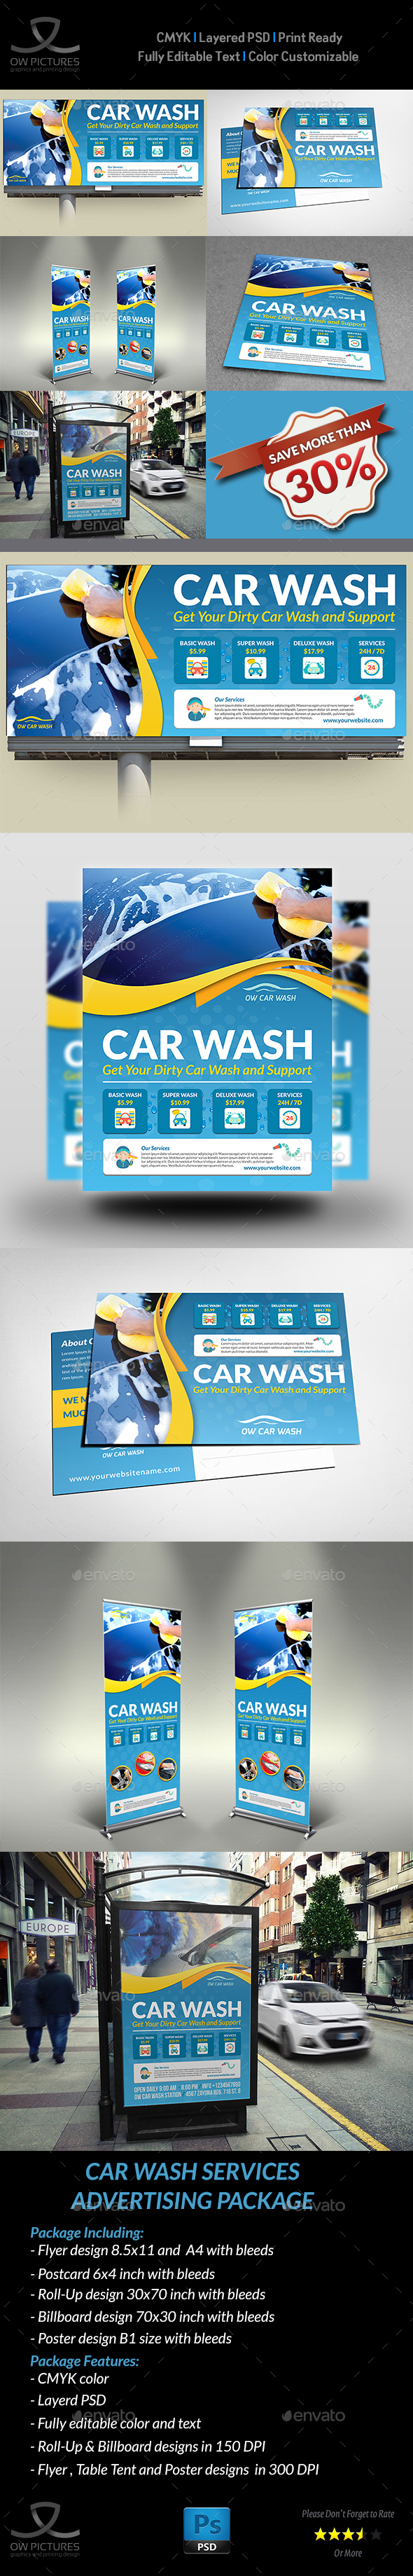 Car Wash Services Advertising Bundle Template - Signage Print Templates